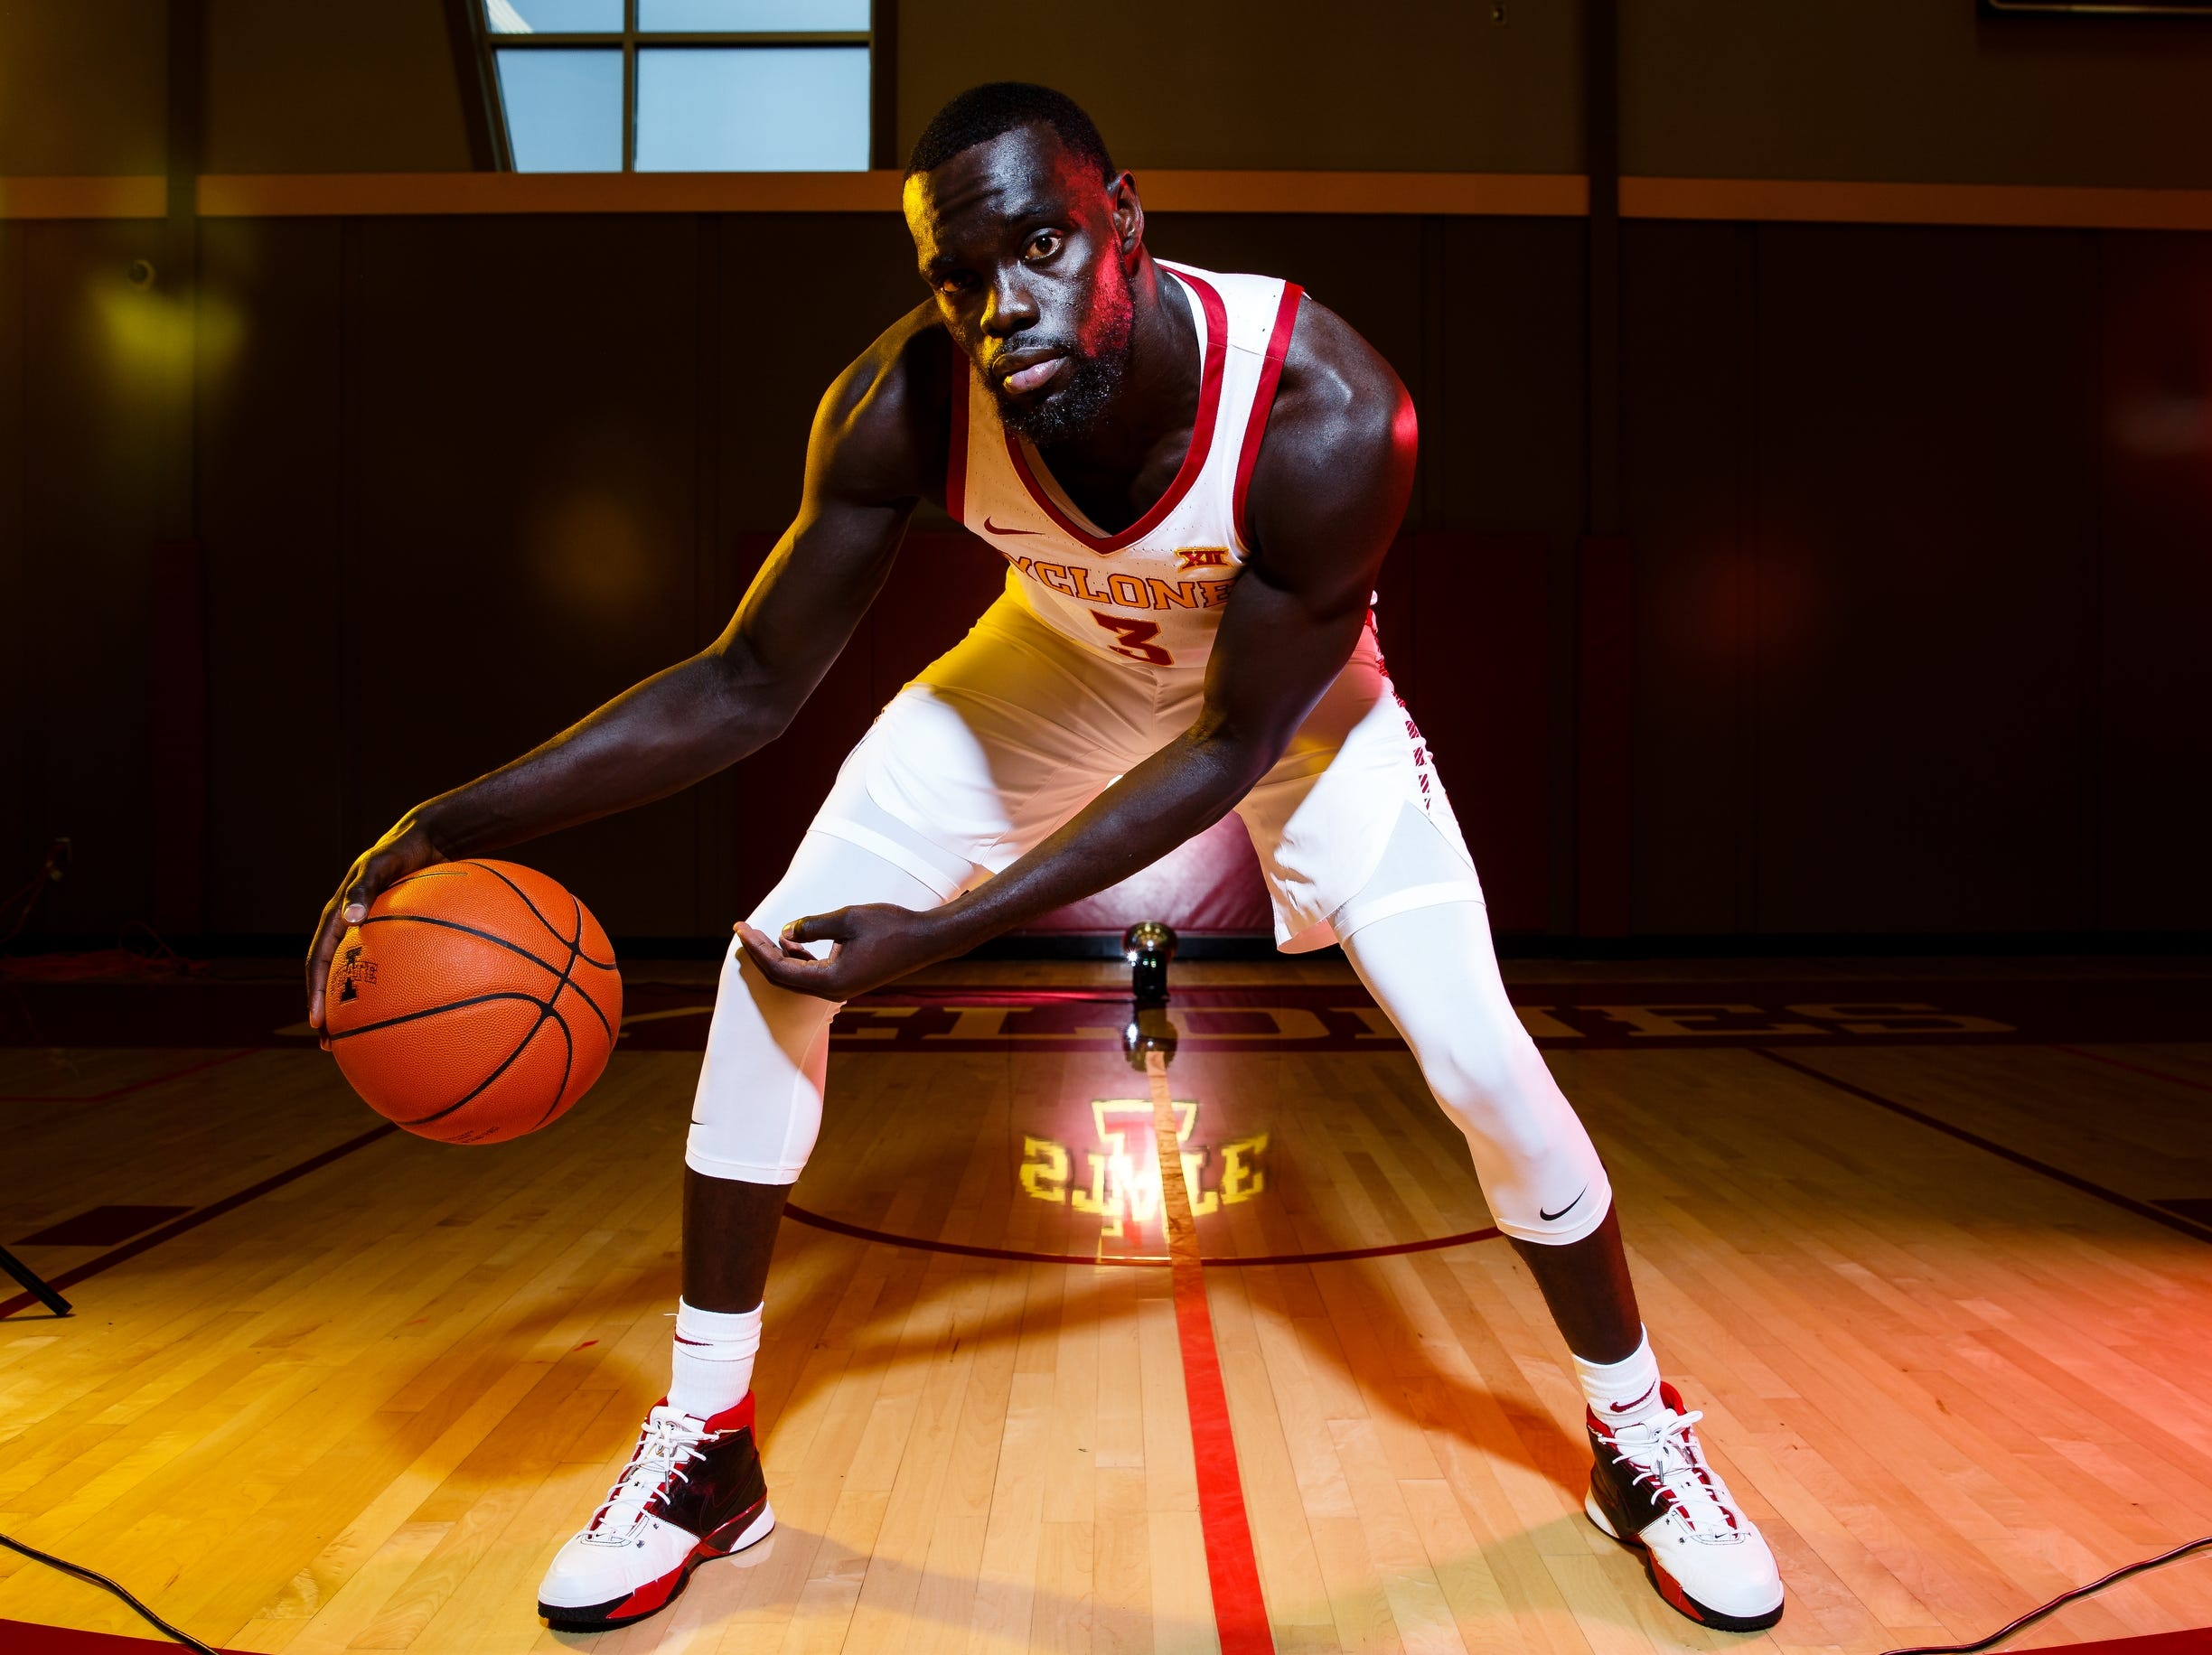 Iowa State's Marial Shayok poses for a photo during media day on Thursday, Oct. 11, 2018, in Ames.